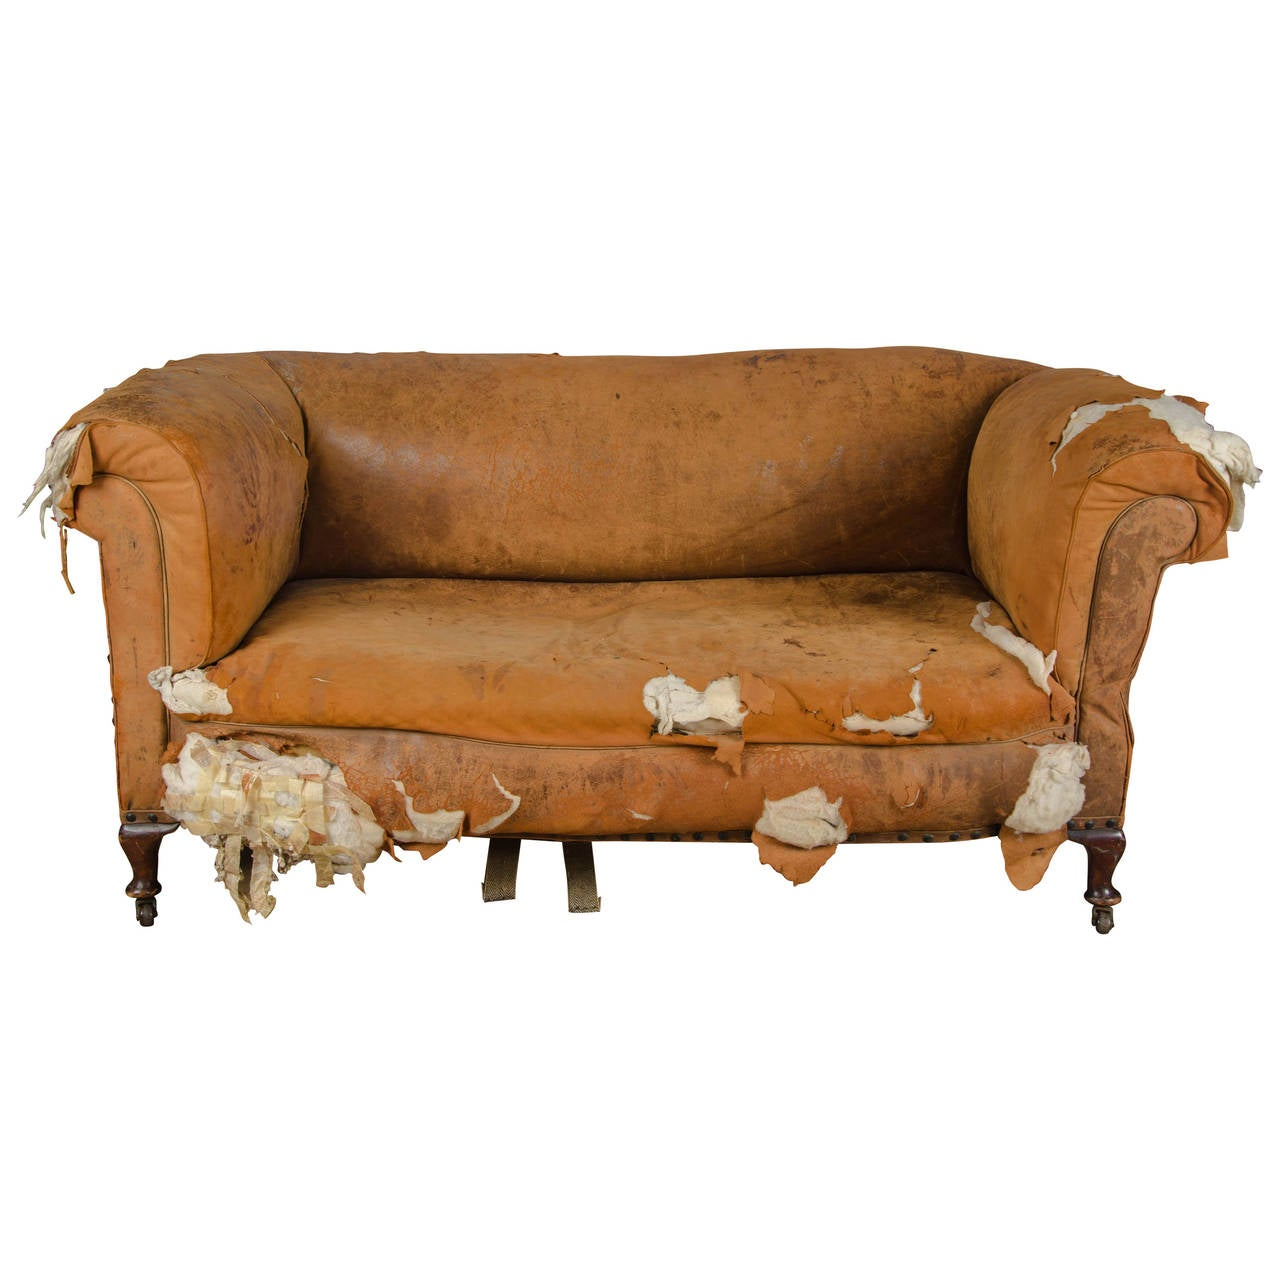 Antique Distressed Victorian Drop End Leather Sofa At 1stdibs